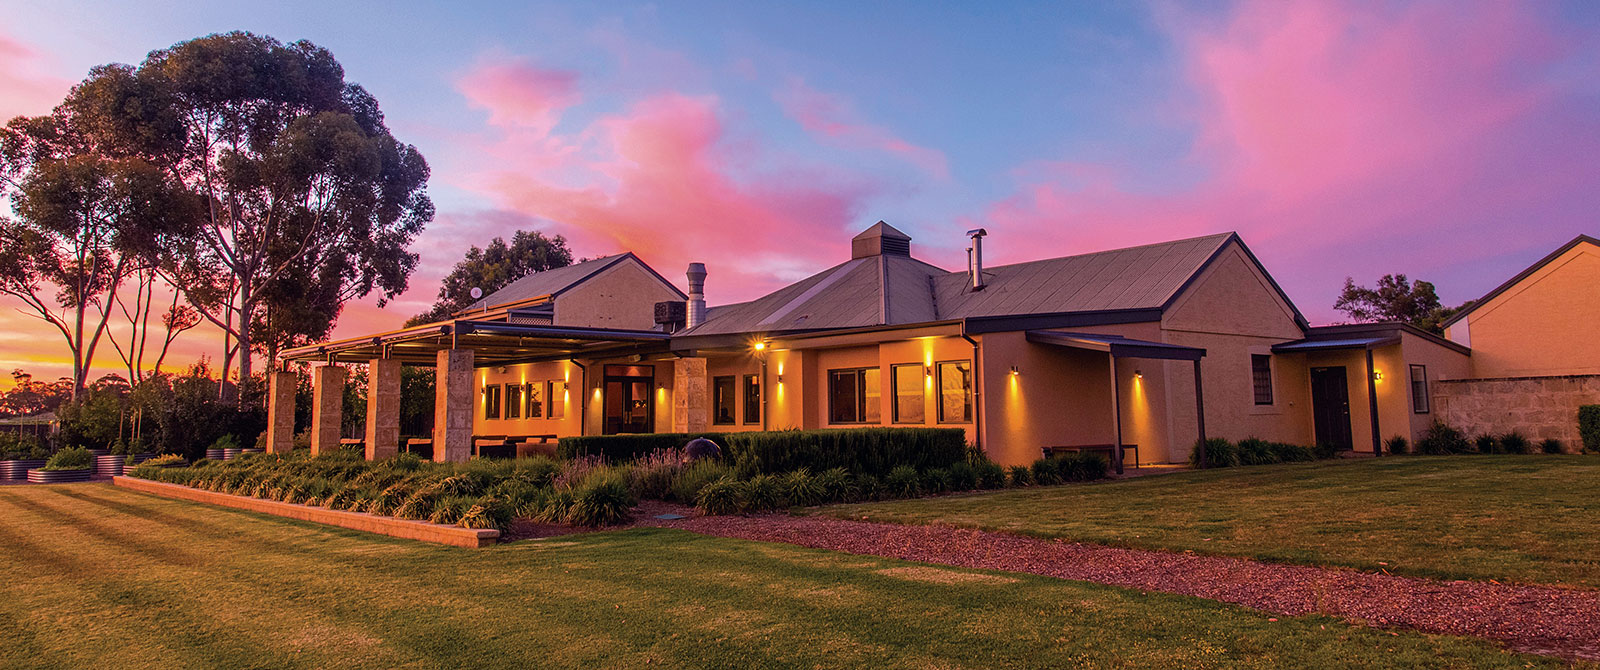 Great Ocean Road Tour - Australia Vacations - The Louise Barossa Valley Luxury Lodge